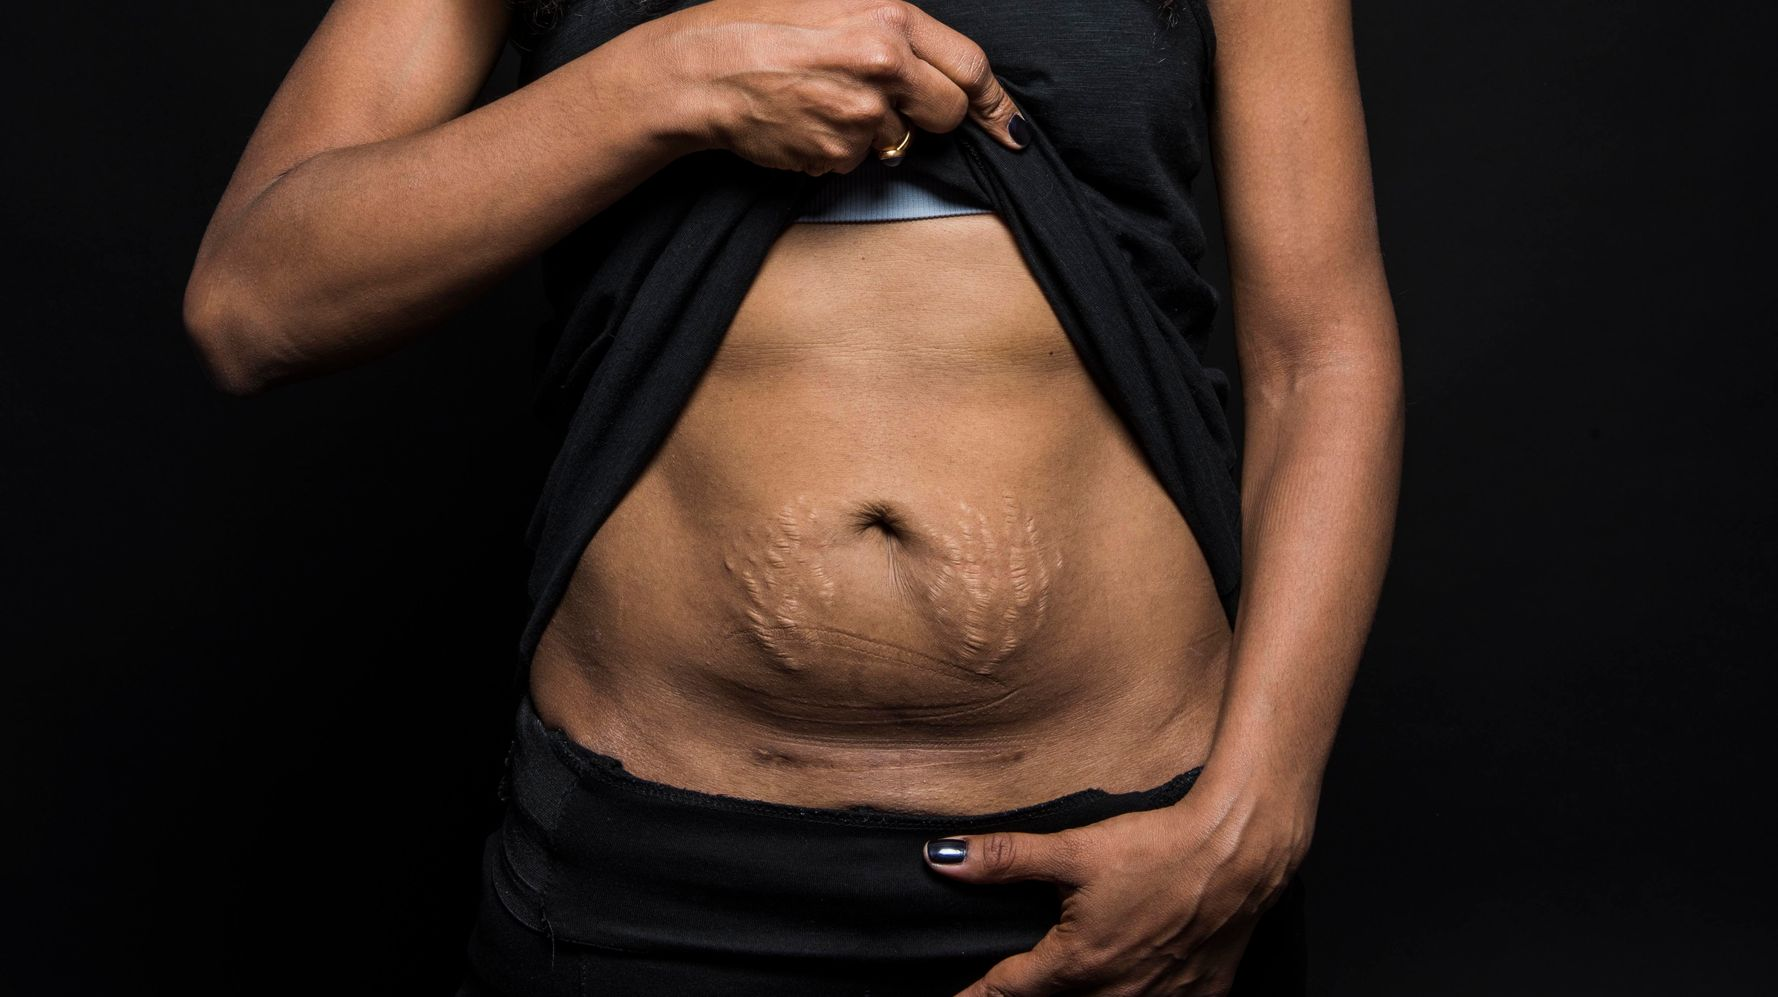 13 Photos That Show C-Section Moms Are Strong As Hell